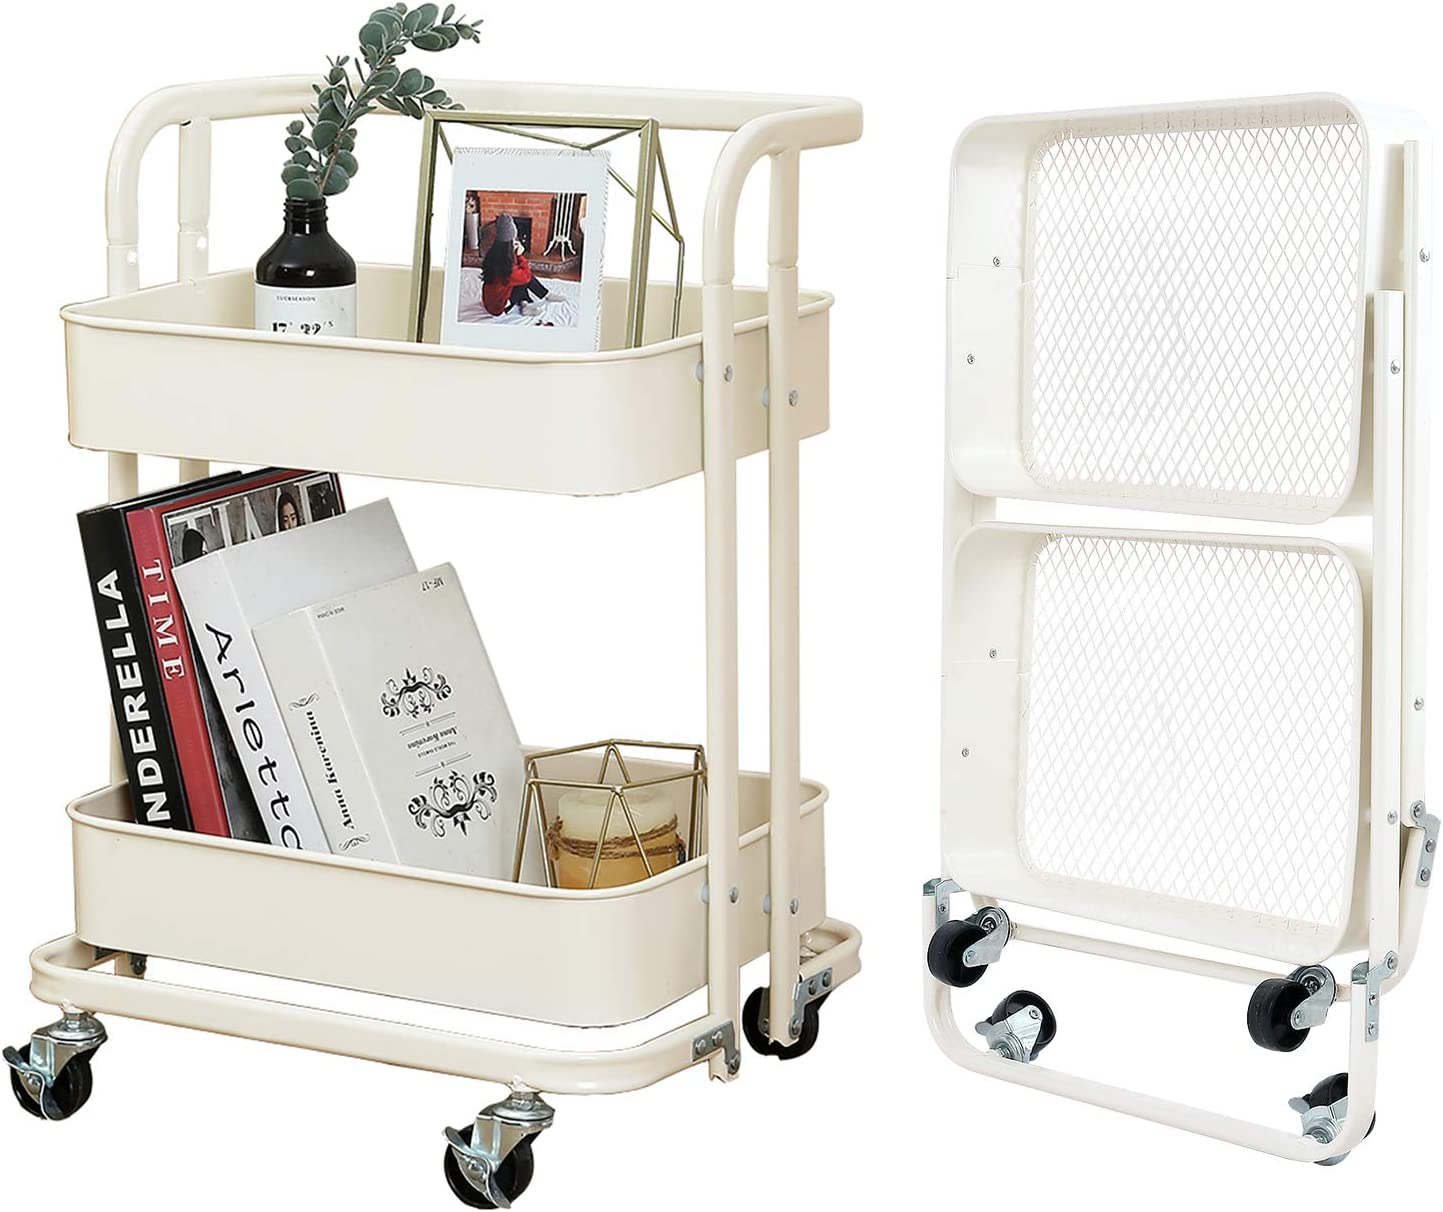 2-Tier Foldable Utility Rolling Cart Multifunction Storage Shelves with Handle and Wheels for Office Kitchen Bathroom Organization,Cream White